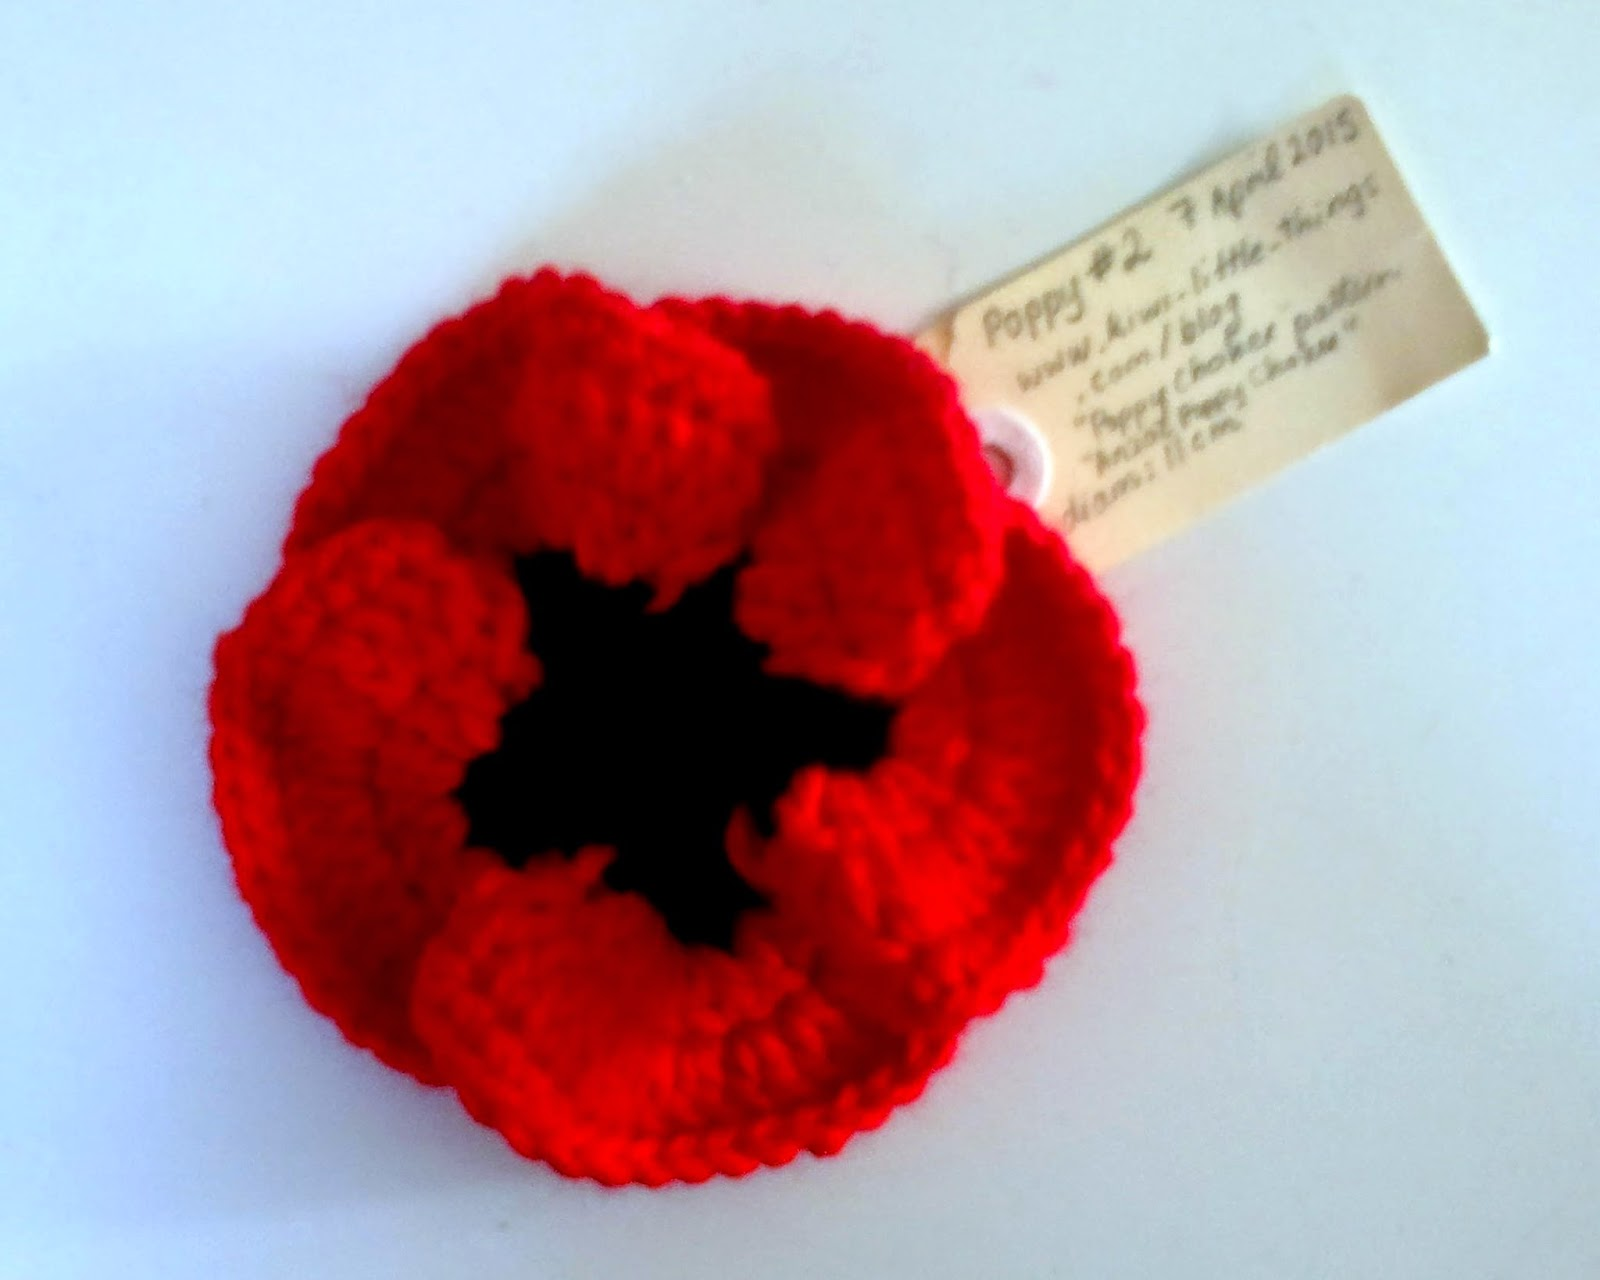 Lupey loops poppy patterns red rosette style poppy with star shaped black centre the curved outer edges naturally bankloansurffo Image collections